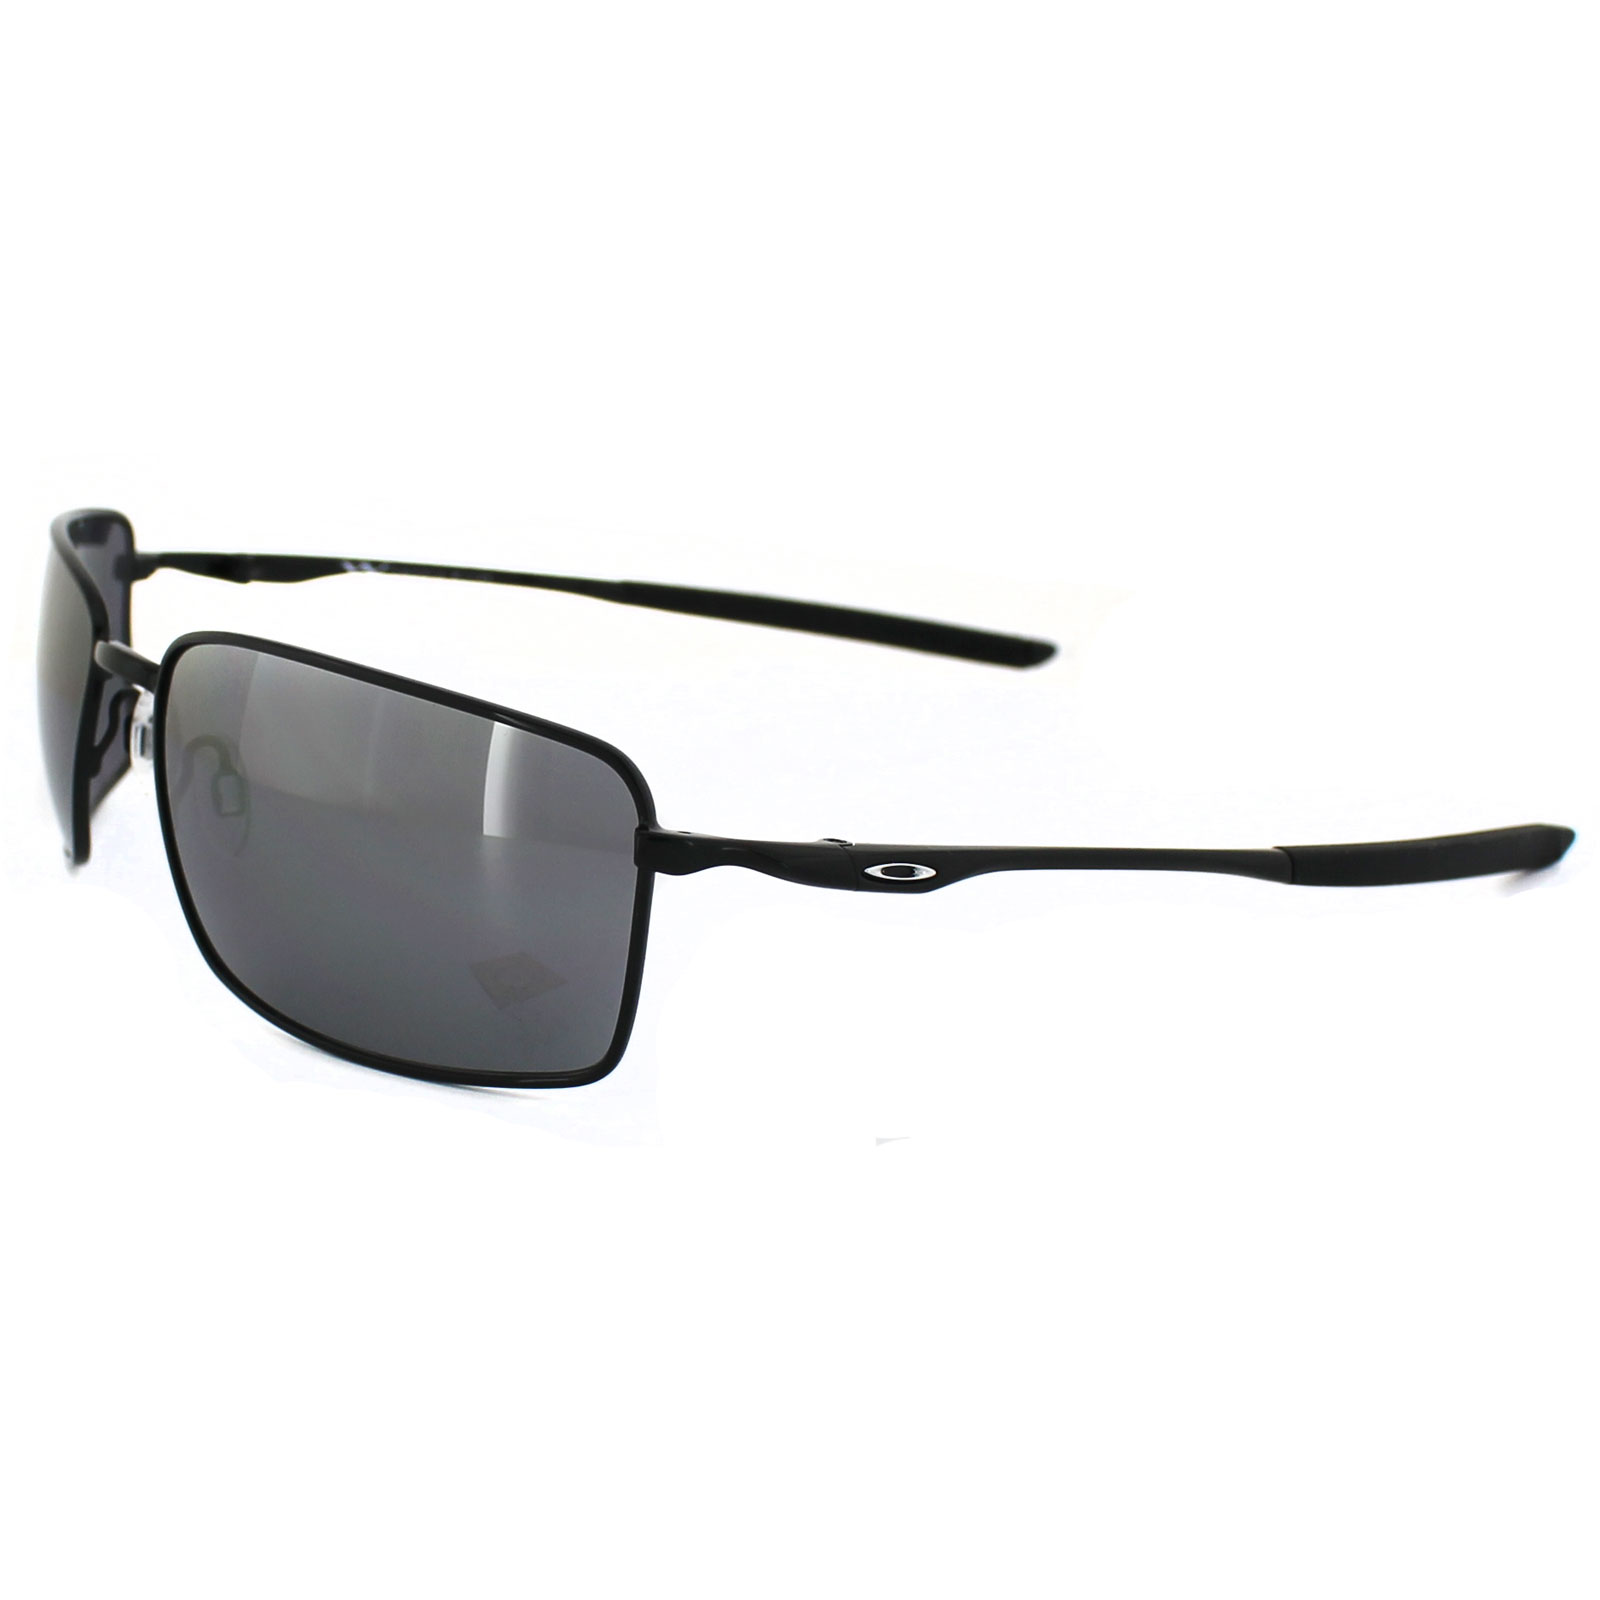 33f5660b34 Sentinel Oakley Sunglasses Square Wire OO4075-01 Polished Black Black  Iridium